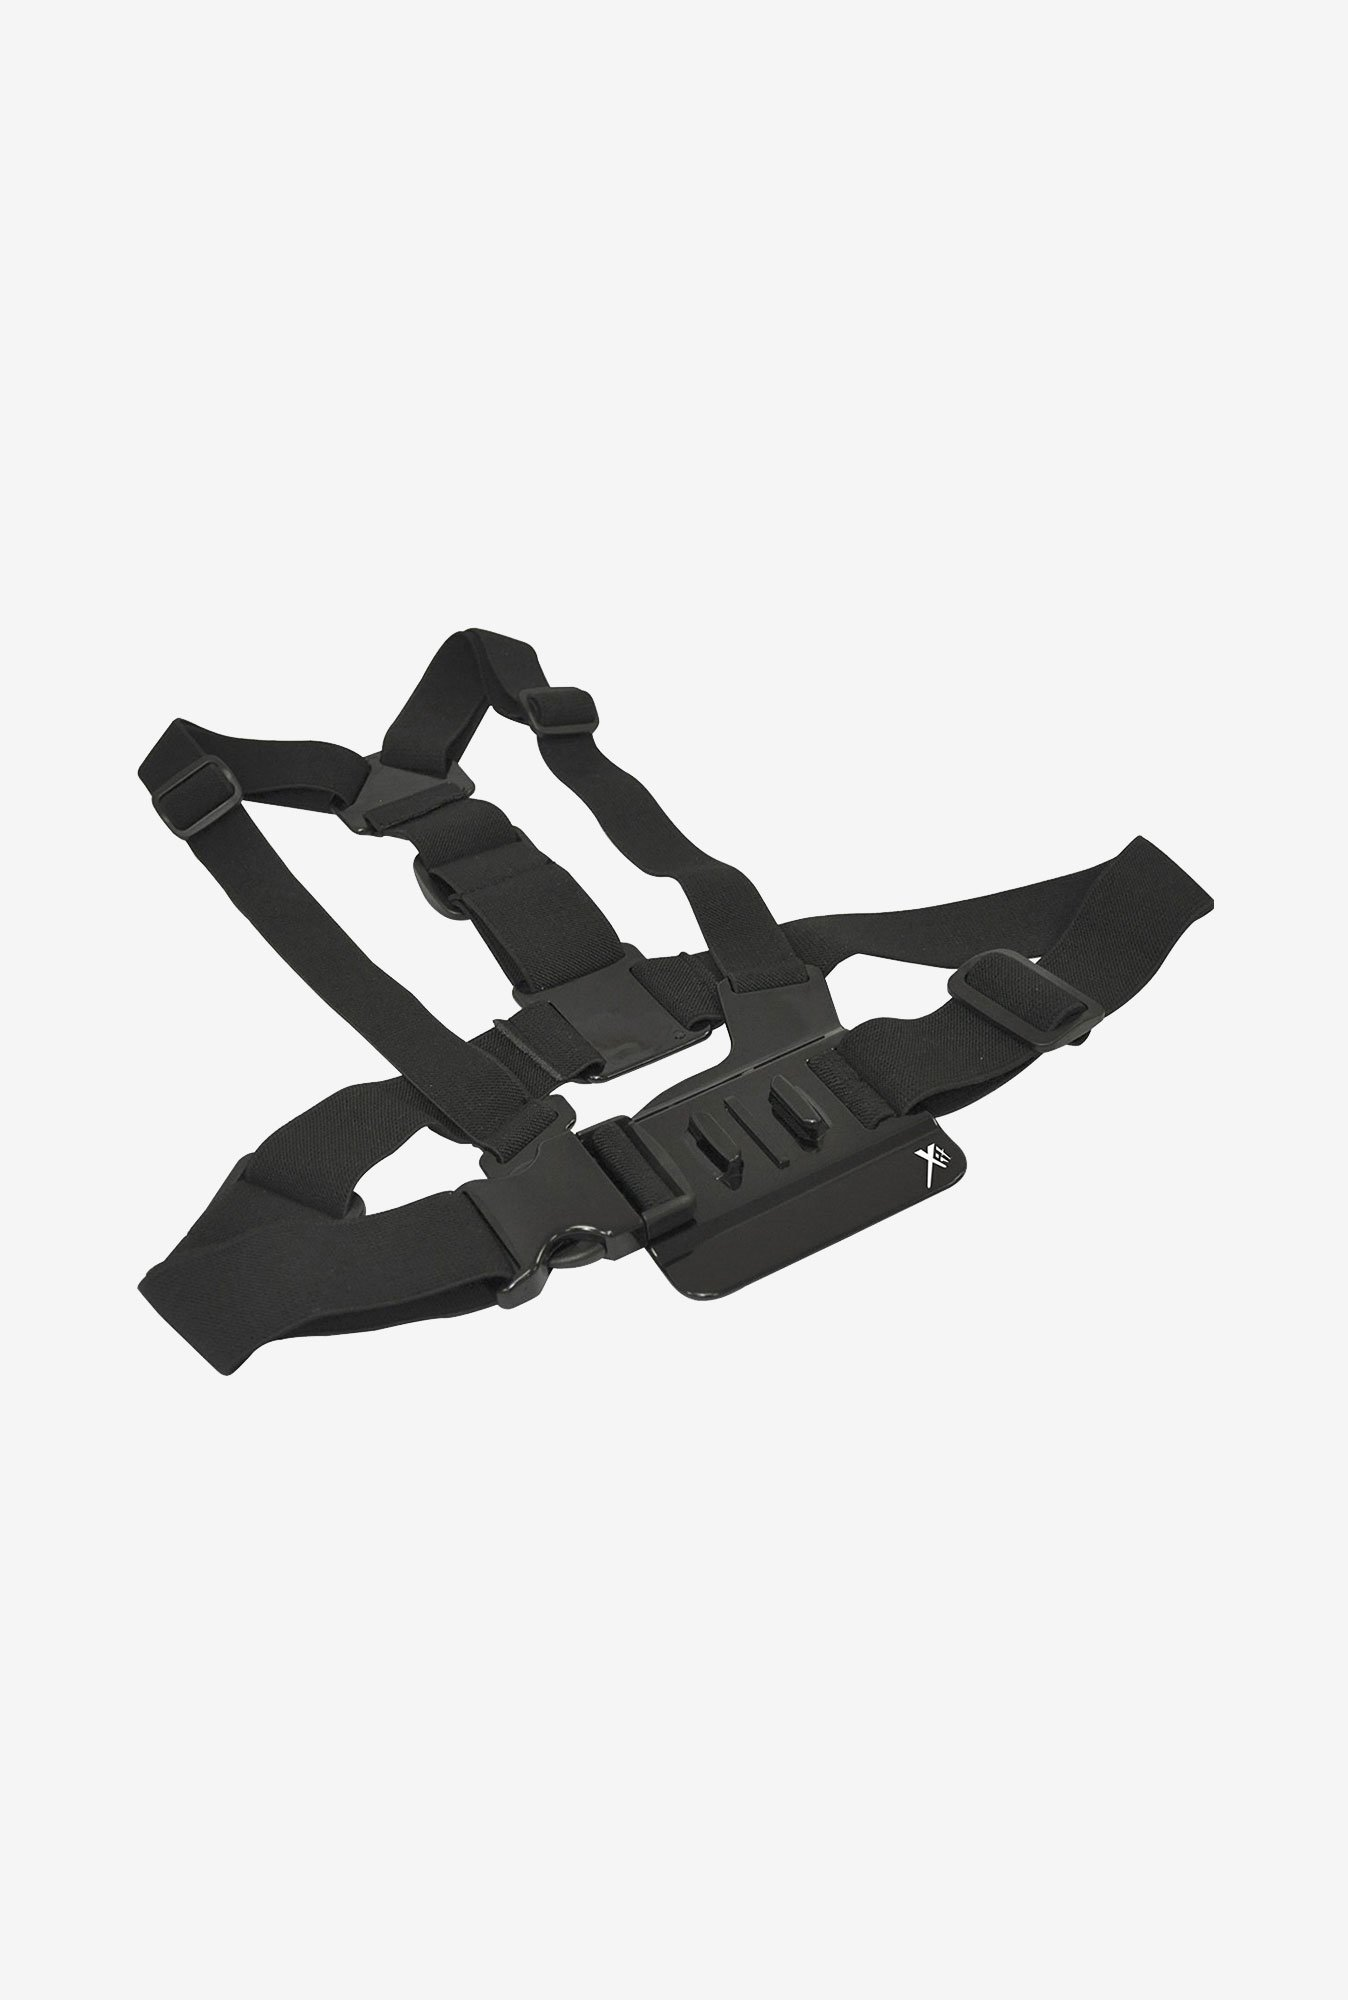 Xit Group XTGPCS GoPro Hero 3/3+ Cameras Chest Strap (Black)